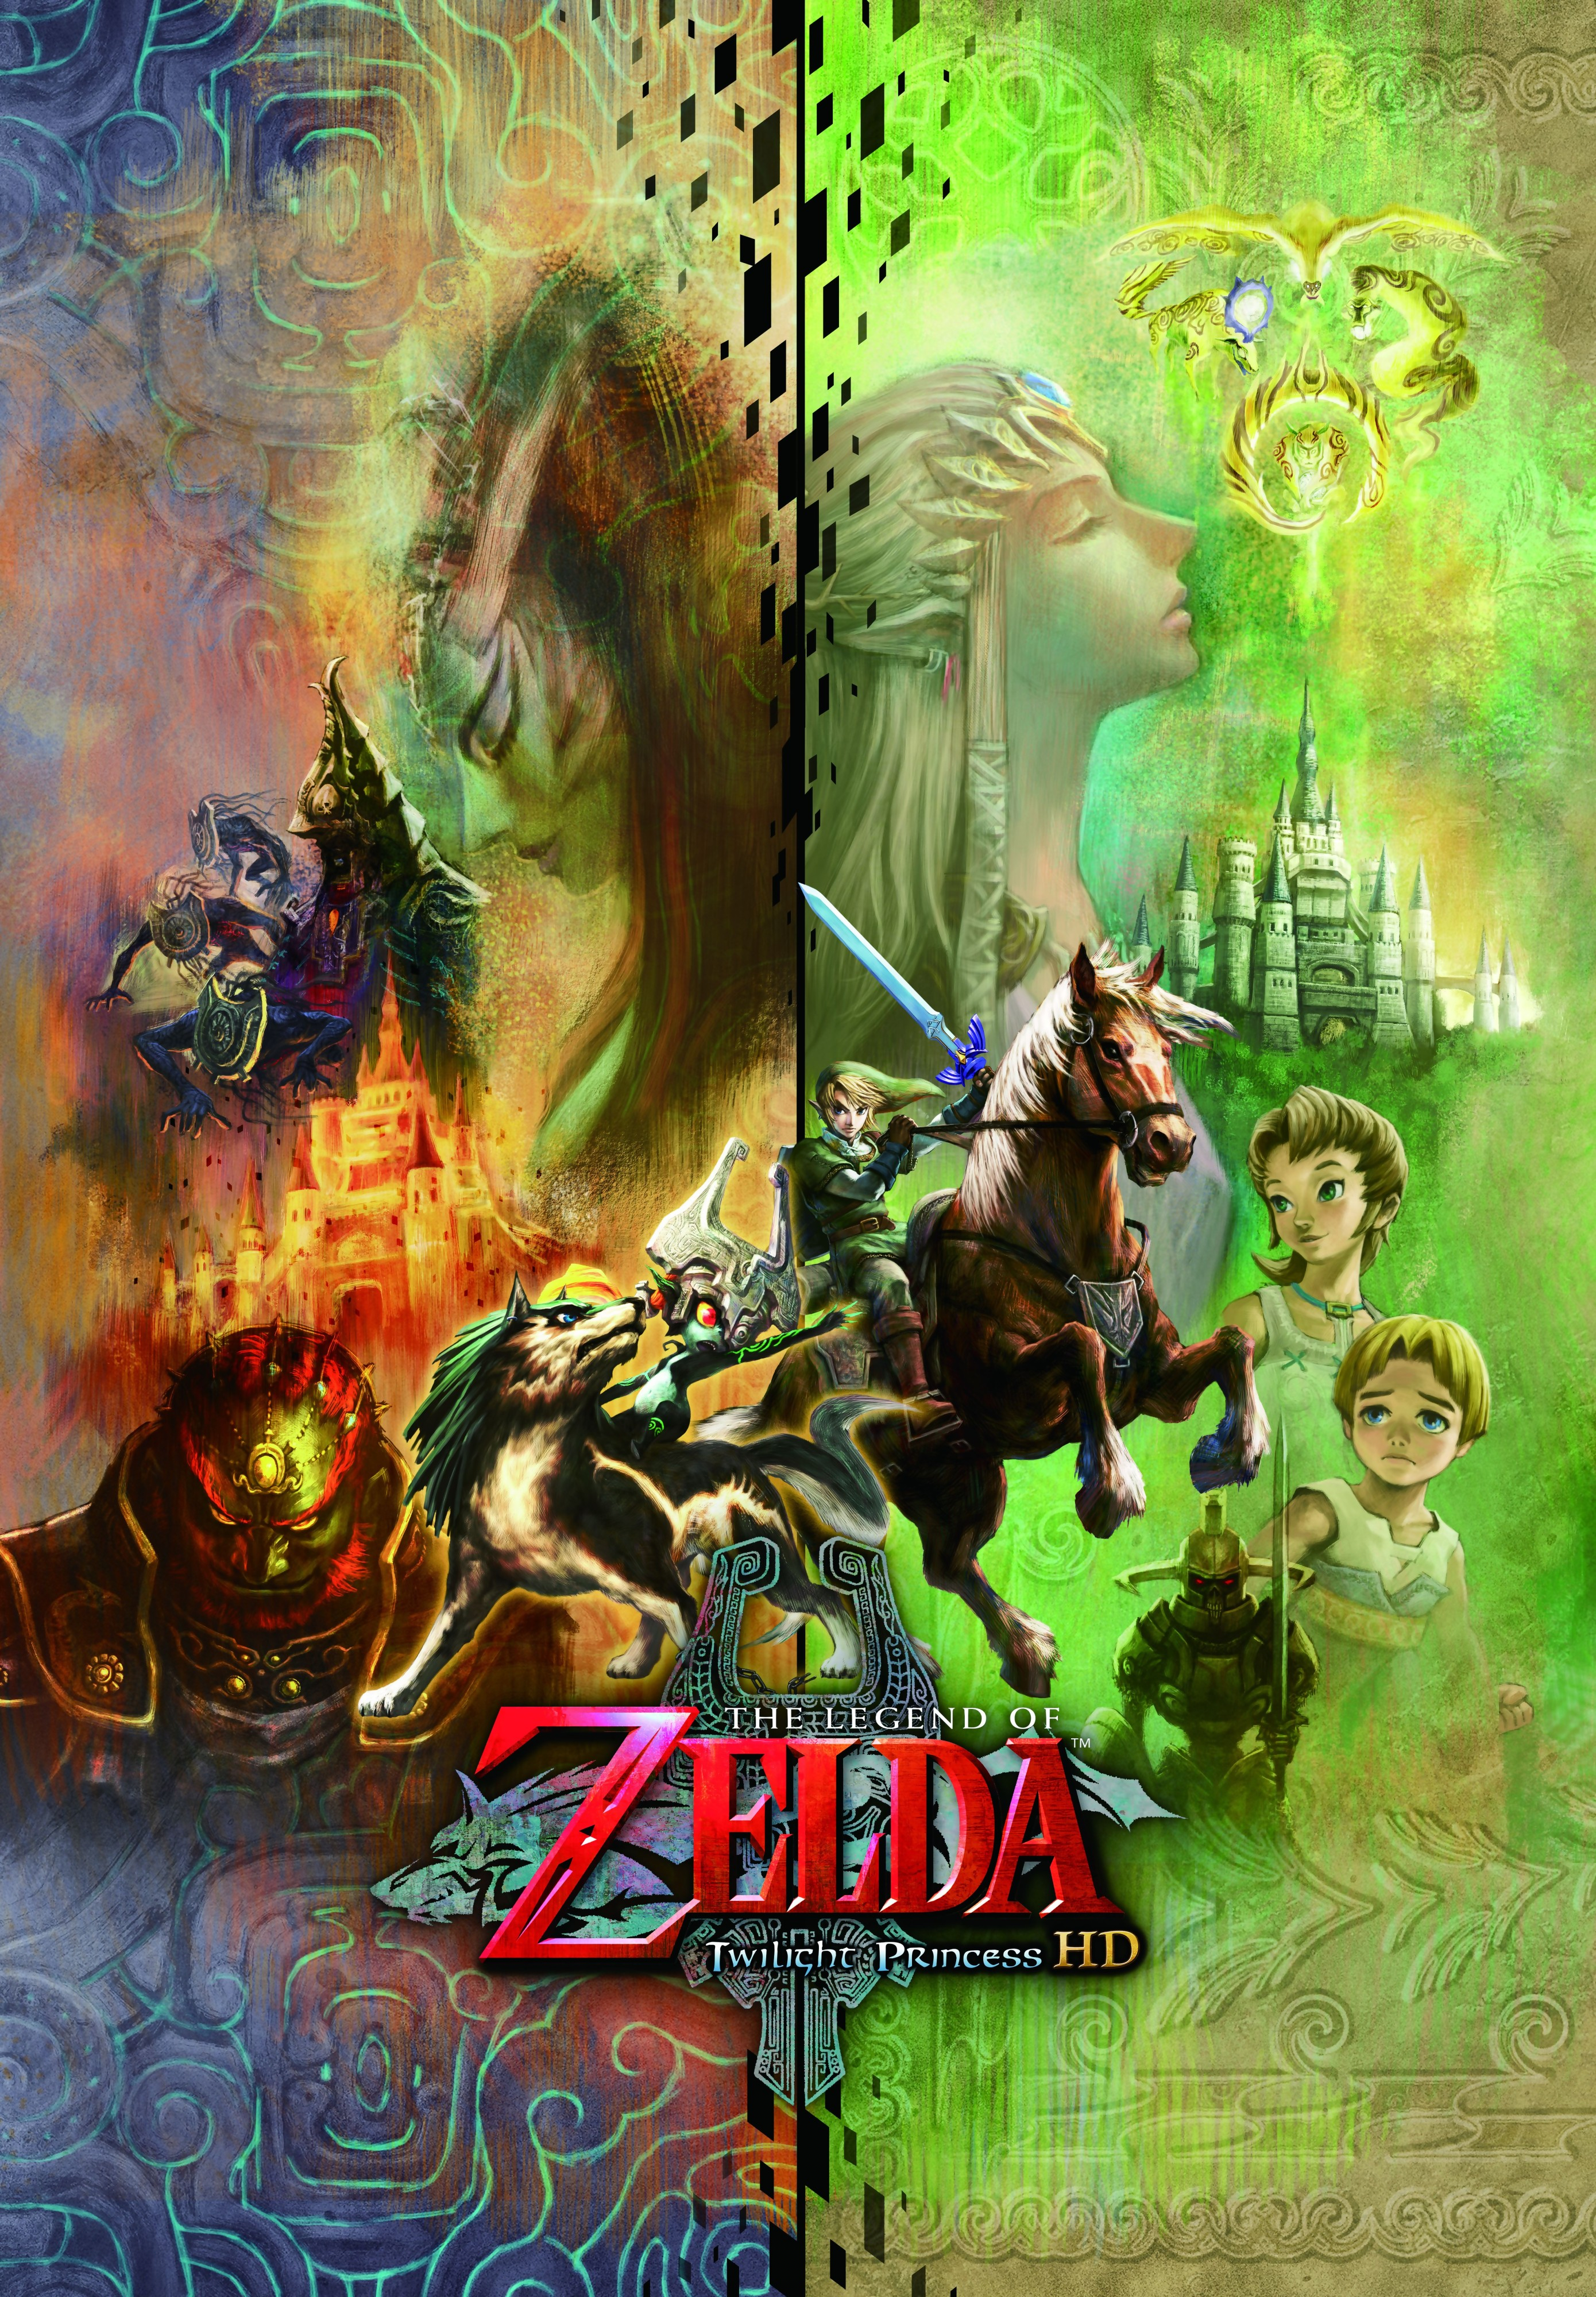 artworks the legend of zelda twilight princess hd page 2